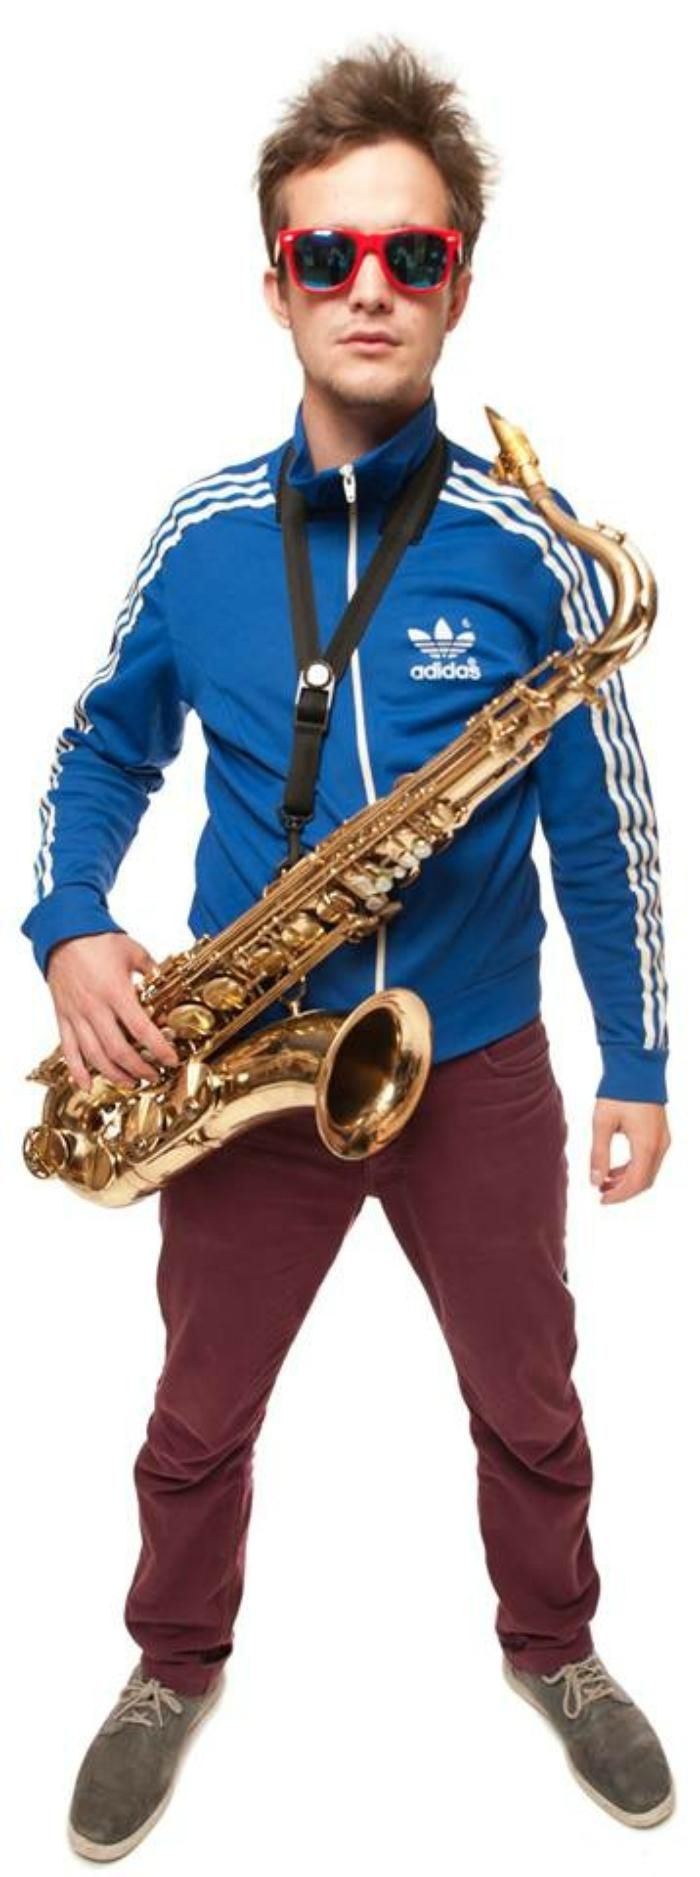 10. The joy of sax